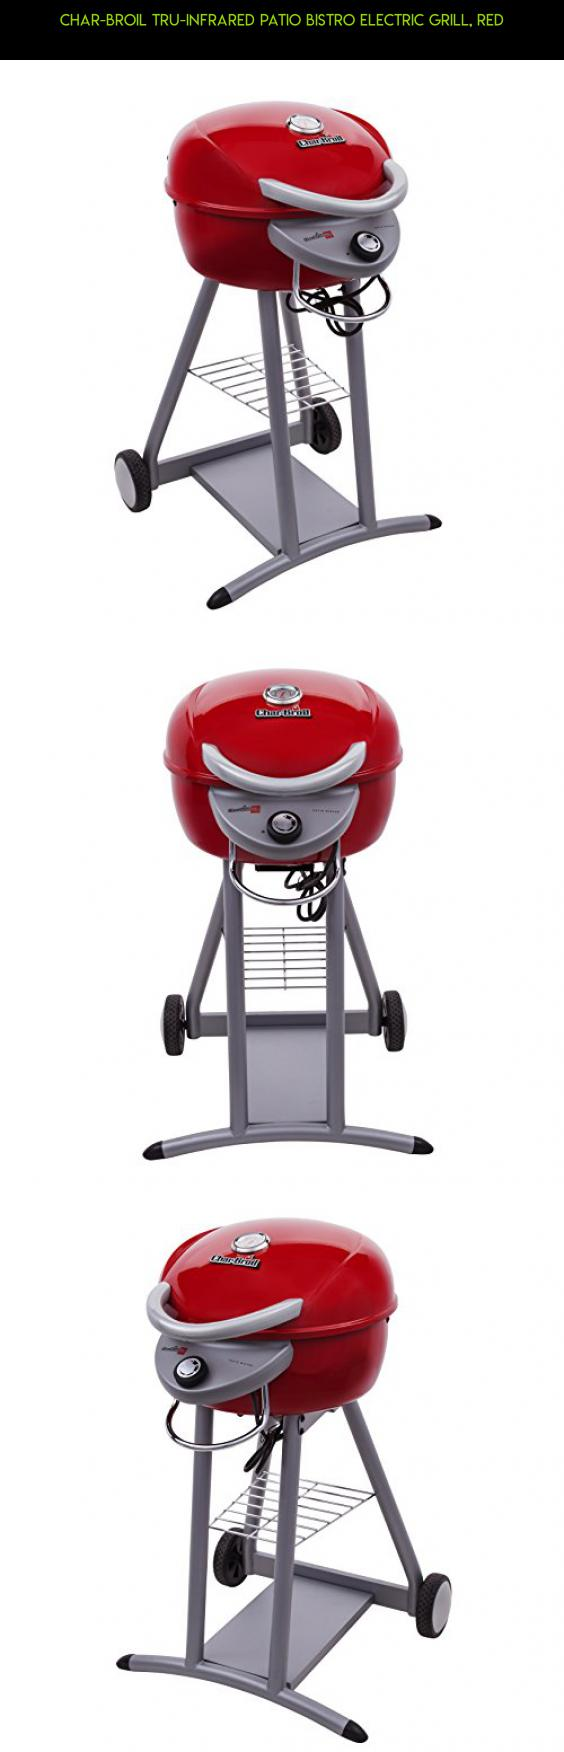 Char Broil TRU Infrared Patio Bistro Electric Grill, Red #electric #grills